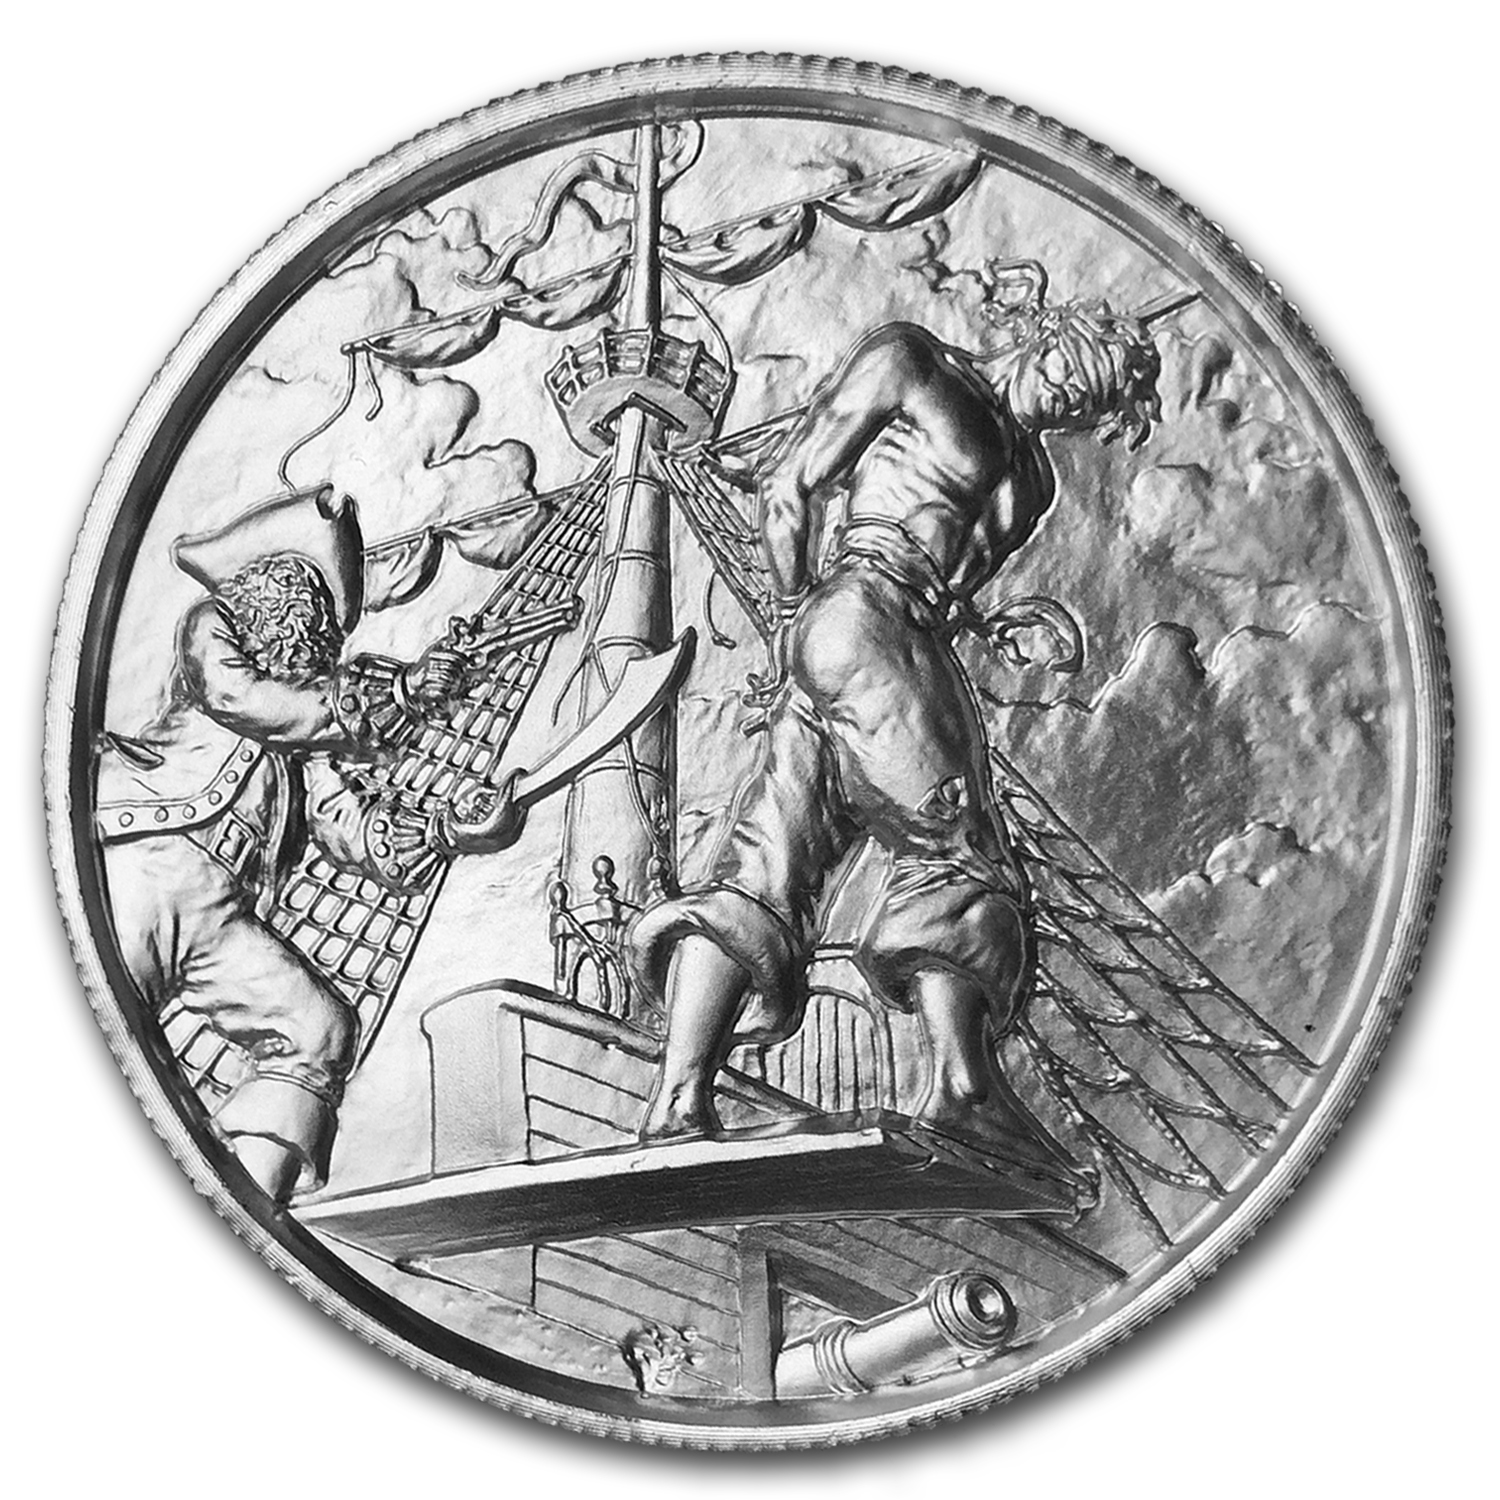 2 oz Silver Round - UHR Privateer Series (The Plank)